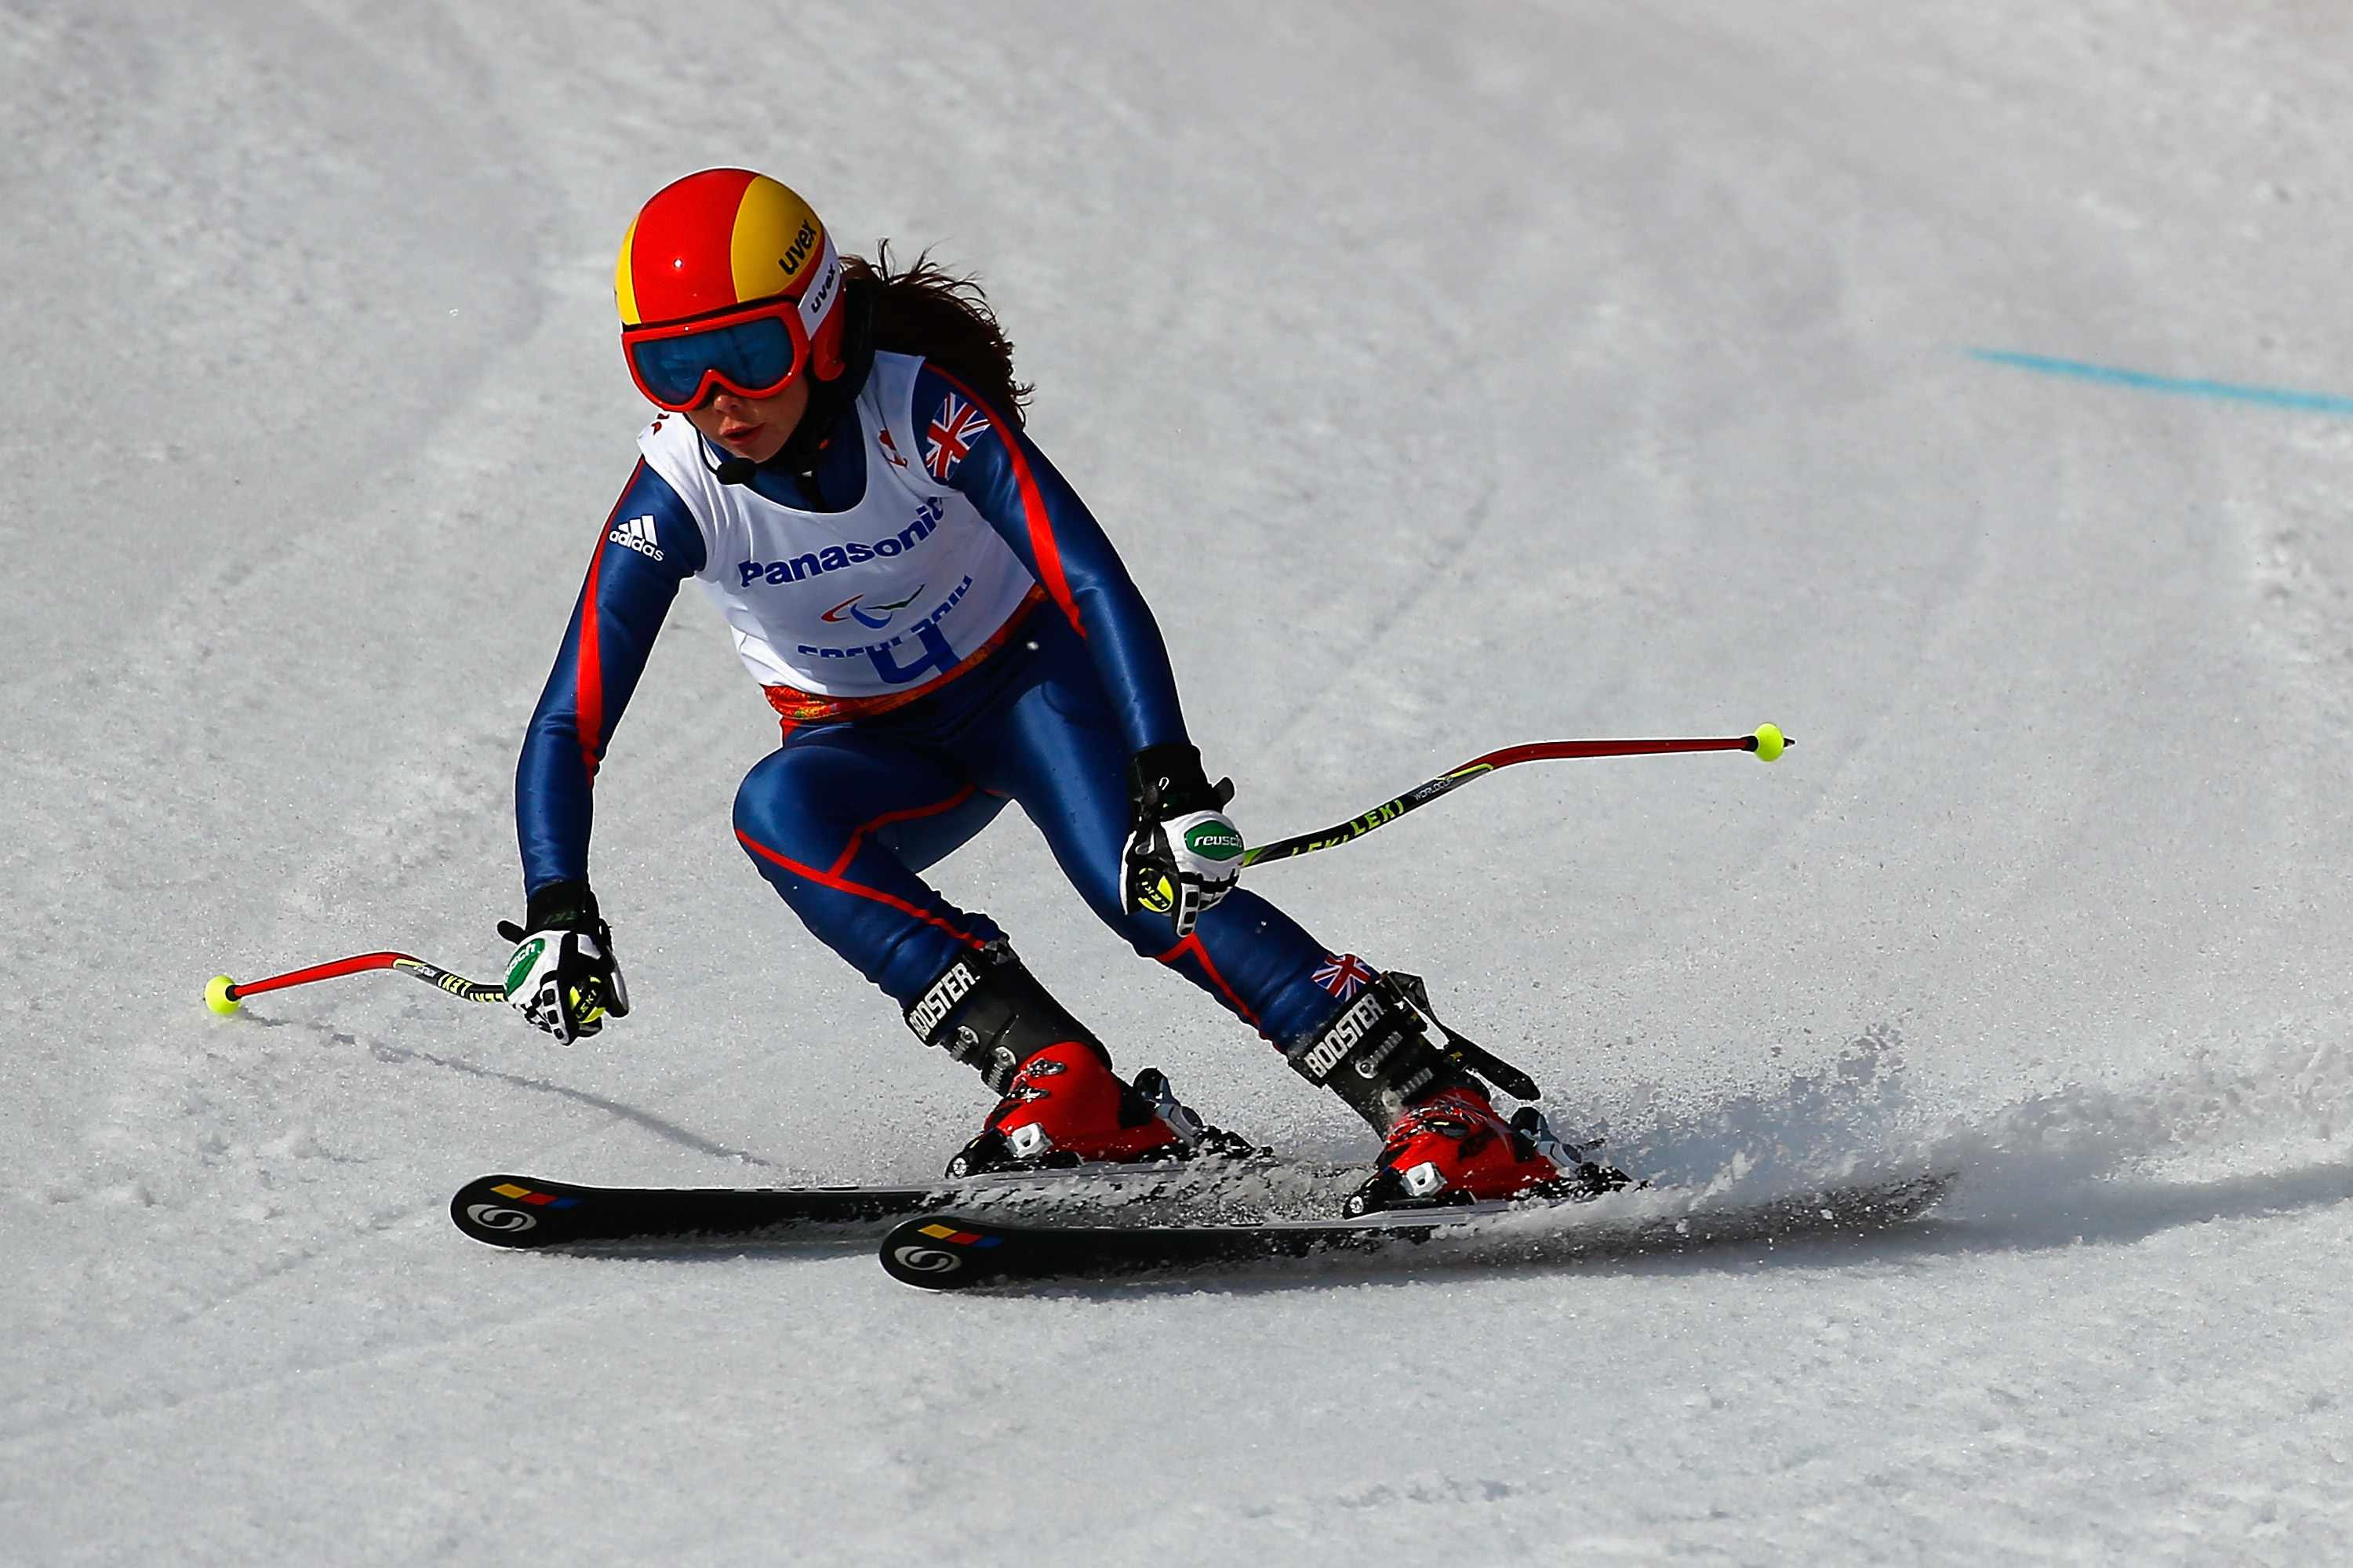 SOCHI, RUSSIA - MARCH 08:  Jade Etherington of Great Britain competes in the Women's Downhill - Visually Impaired during day one of Sochi 2014 Paralympic Winter Games at Rosa Khutor Alpine Center on March 8, 2014 in Sochi, Russia.  (Photo by Tom Pennington/Getty Images)  Getty, TL